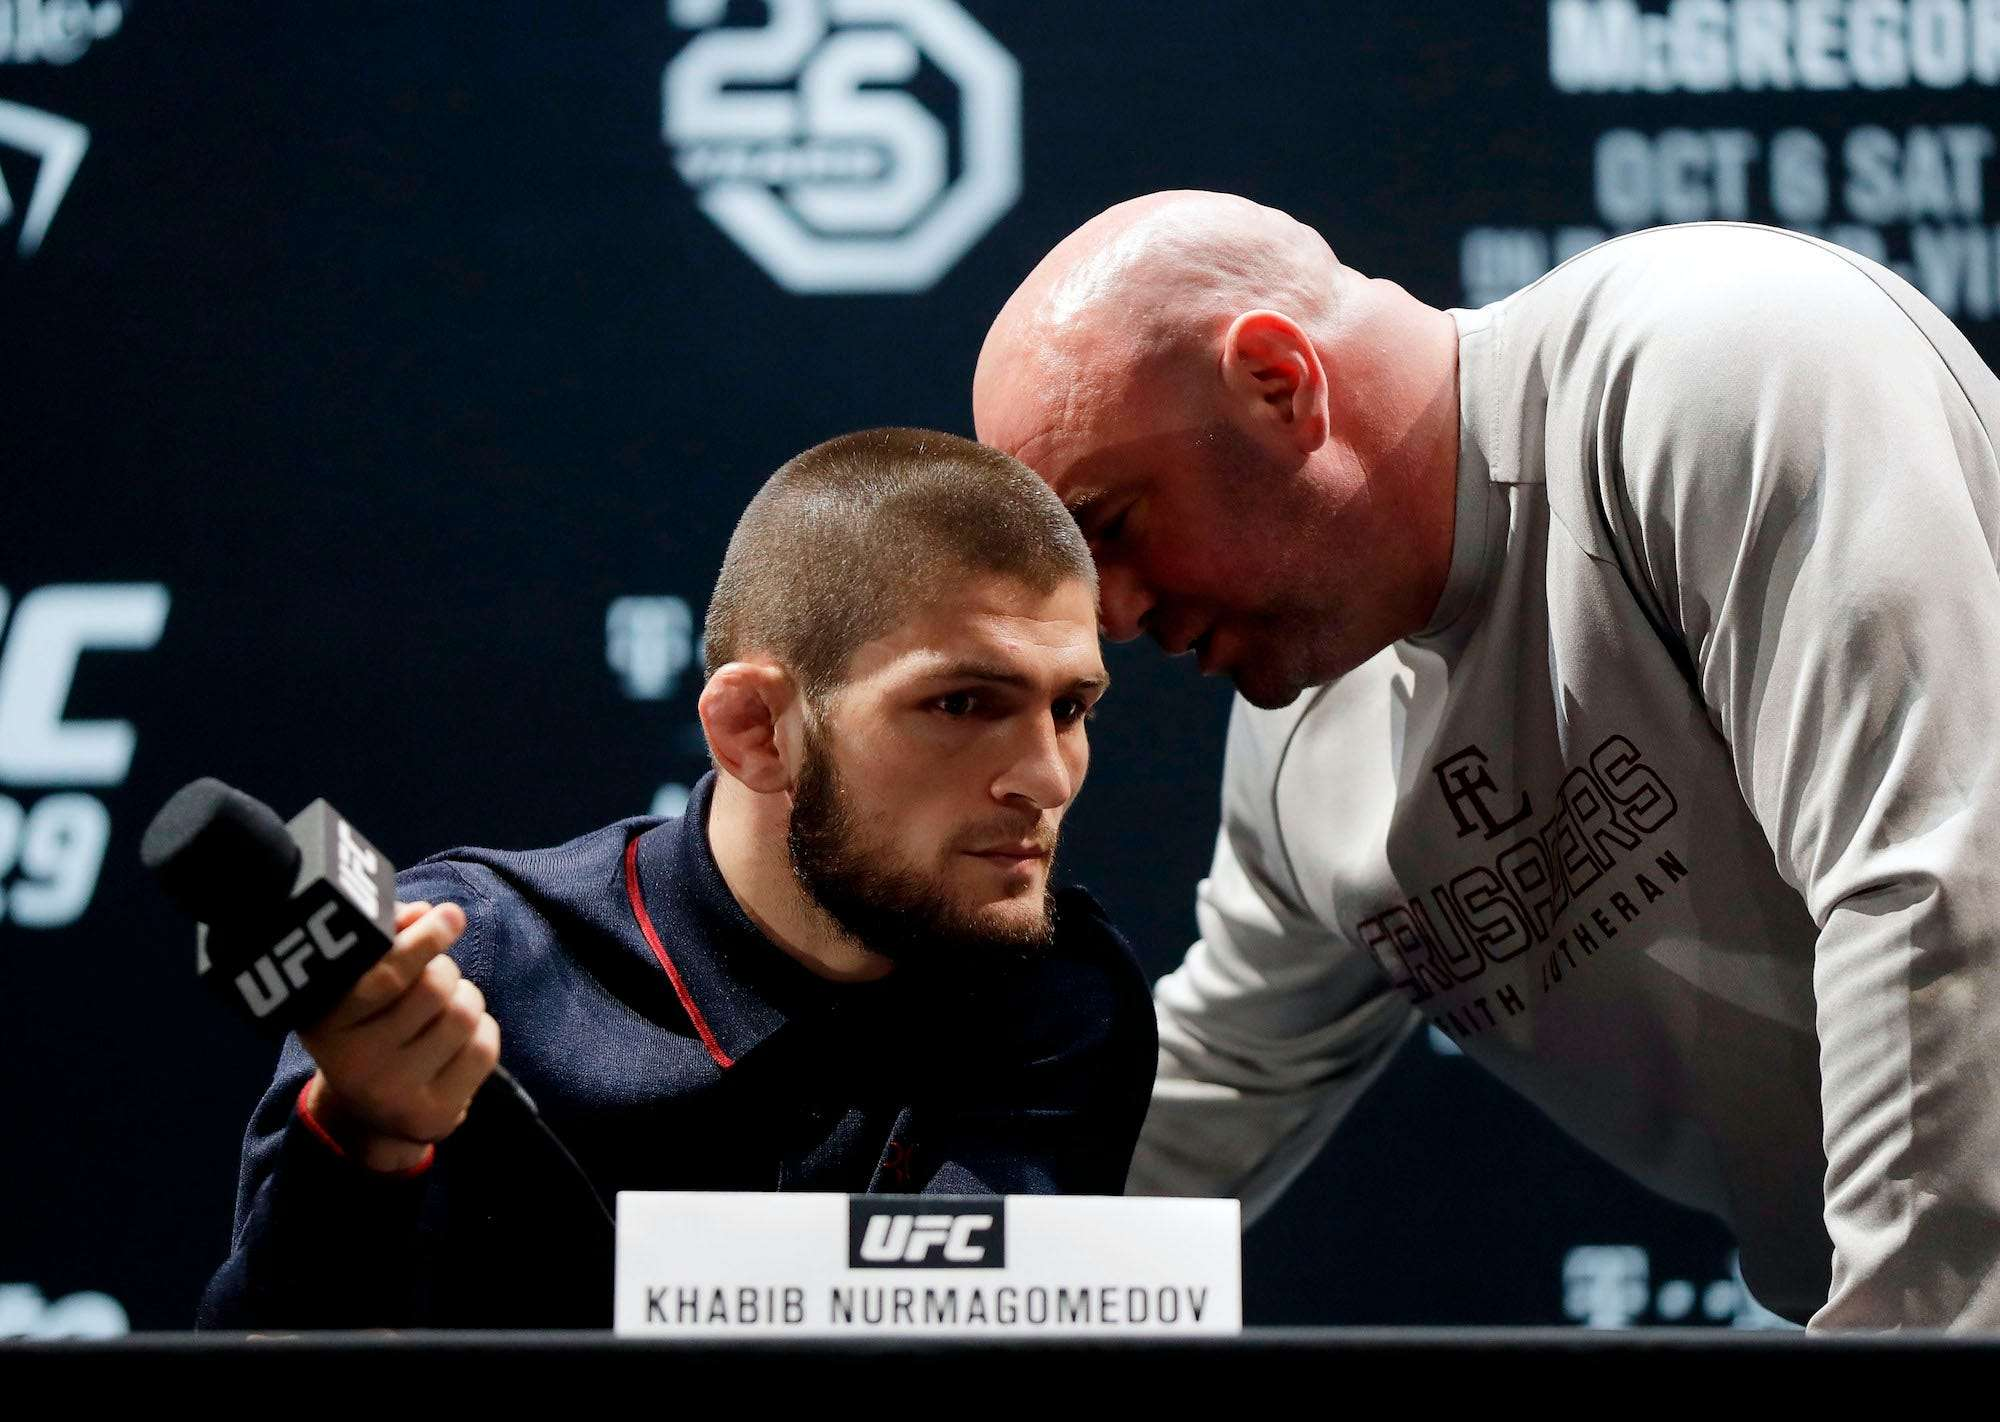 Ufc Boss Dana White Says He Ll Push Khabib Nurmagomedov To Break His Retirement And Fight Again Business Insider India